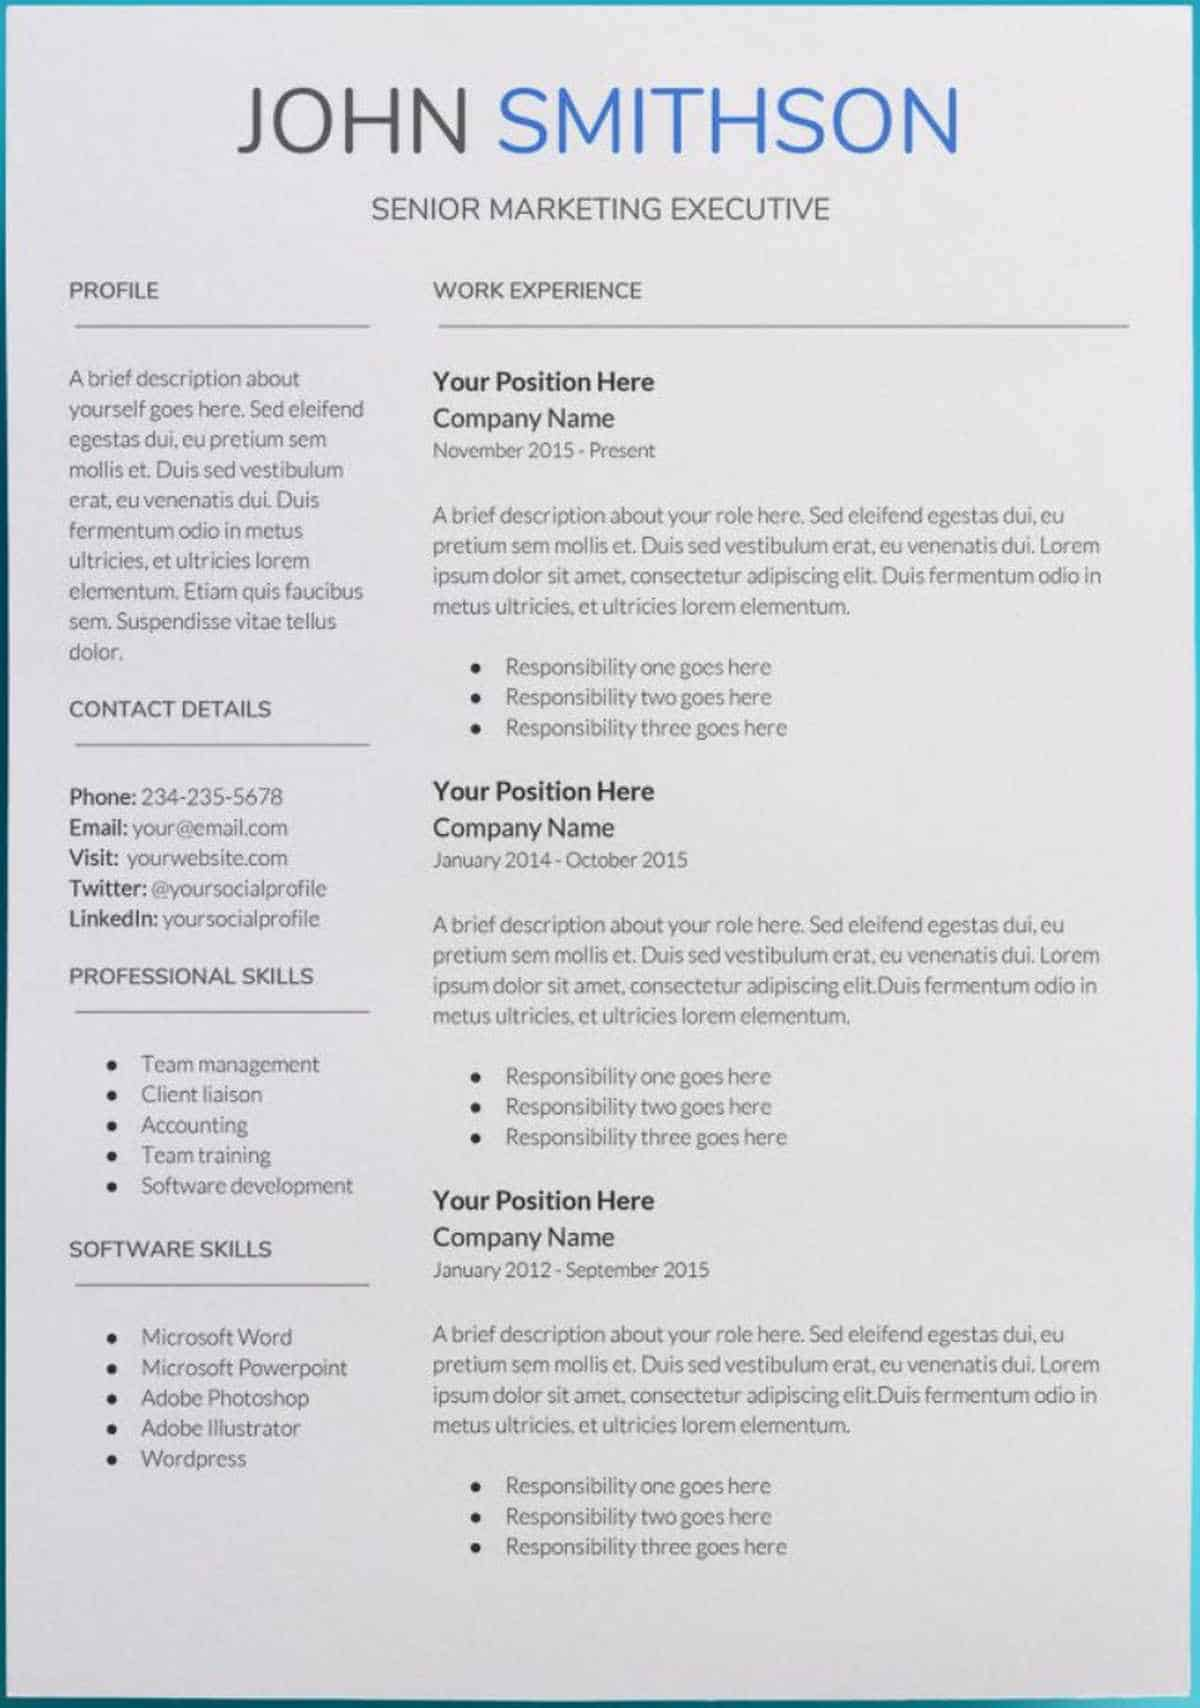 google docs resume templates downloadable pdfs does have template saturn free original Resume Does Google Docs Have A Resume Template